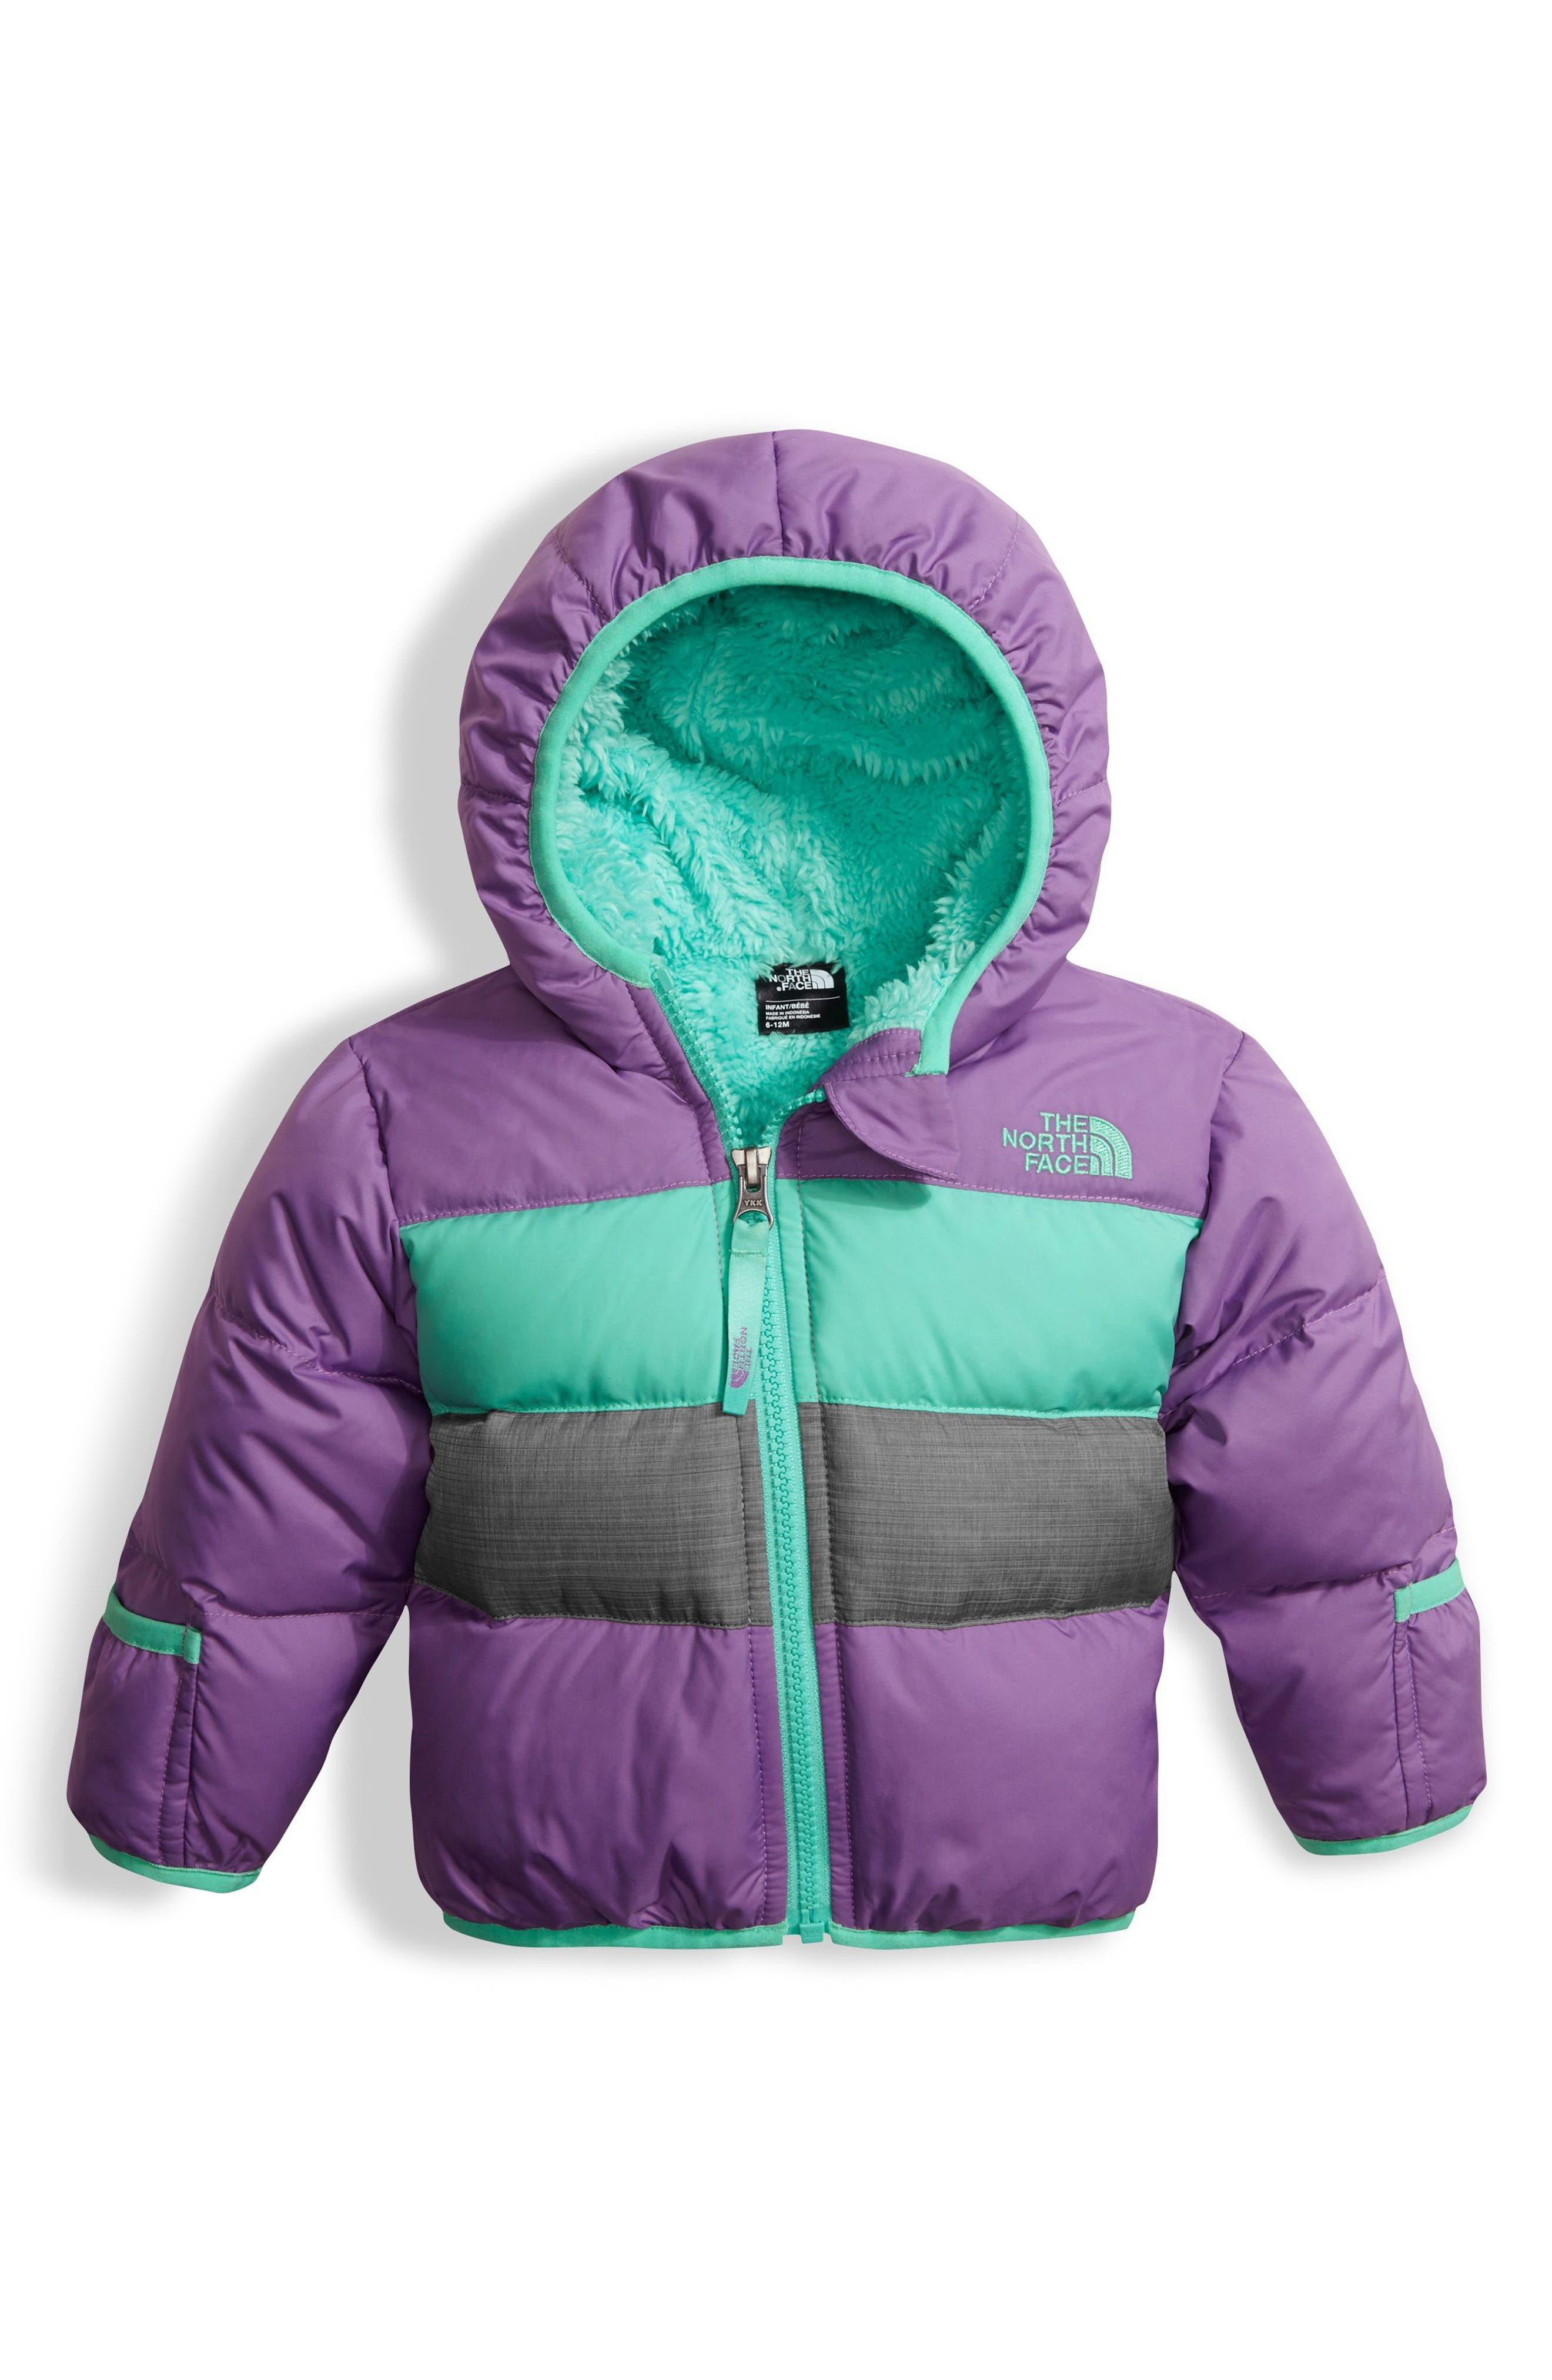 Alternate Image 1 Selected - The North Face 'Moondoggy' Reversible Down Jacket (Baby Girls)